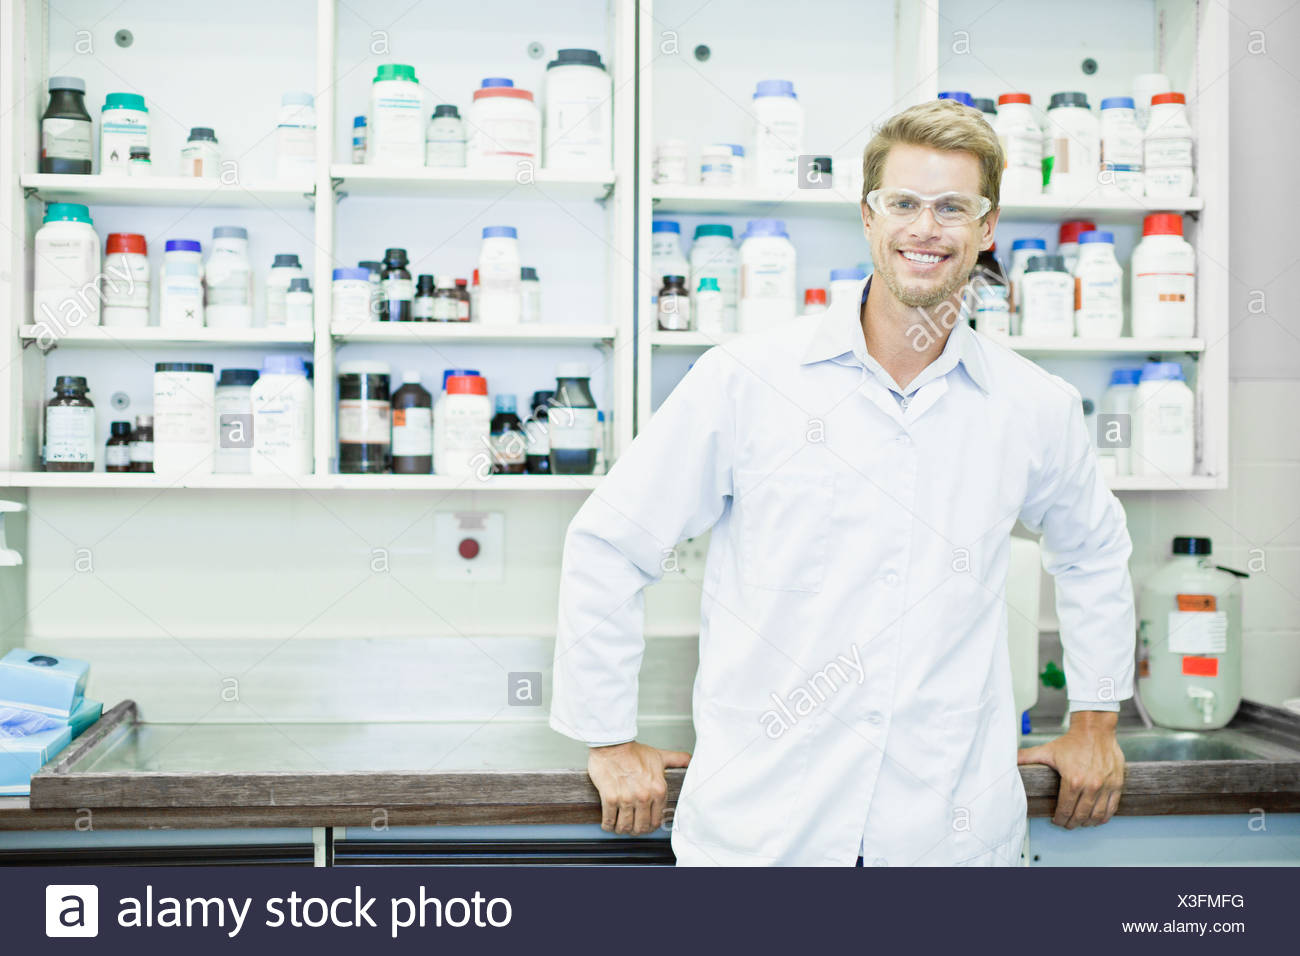 Scientist wearing goggles in lab - Stock Image